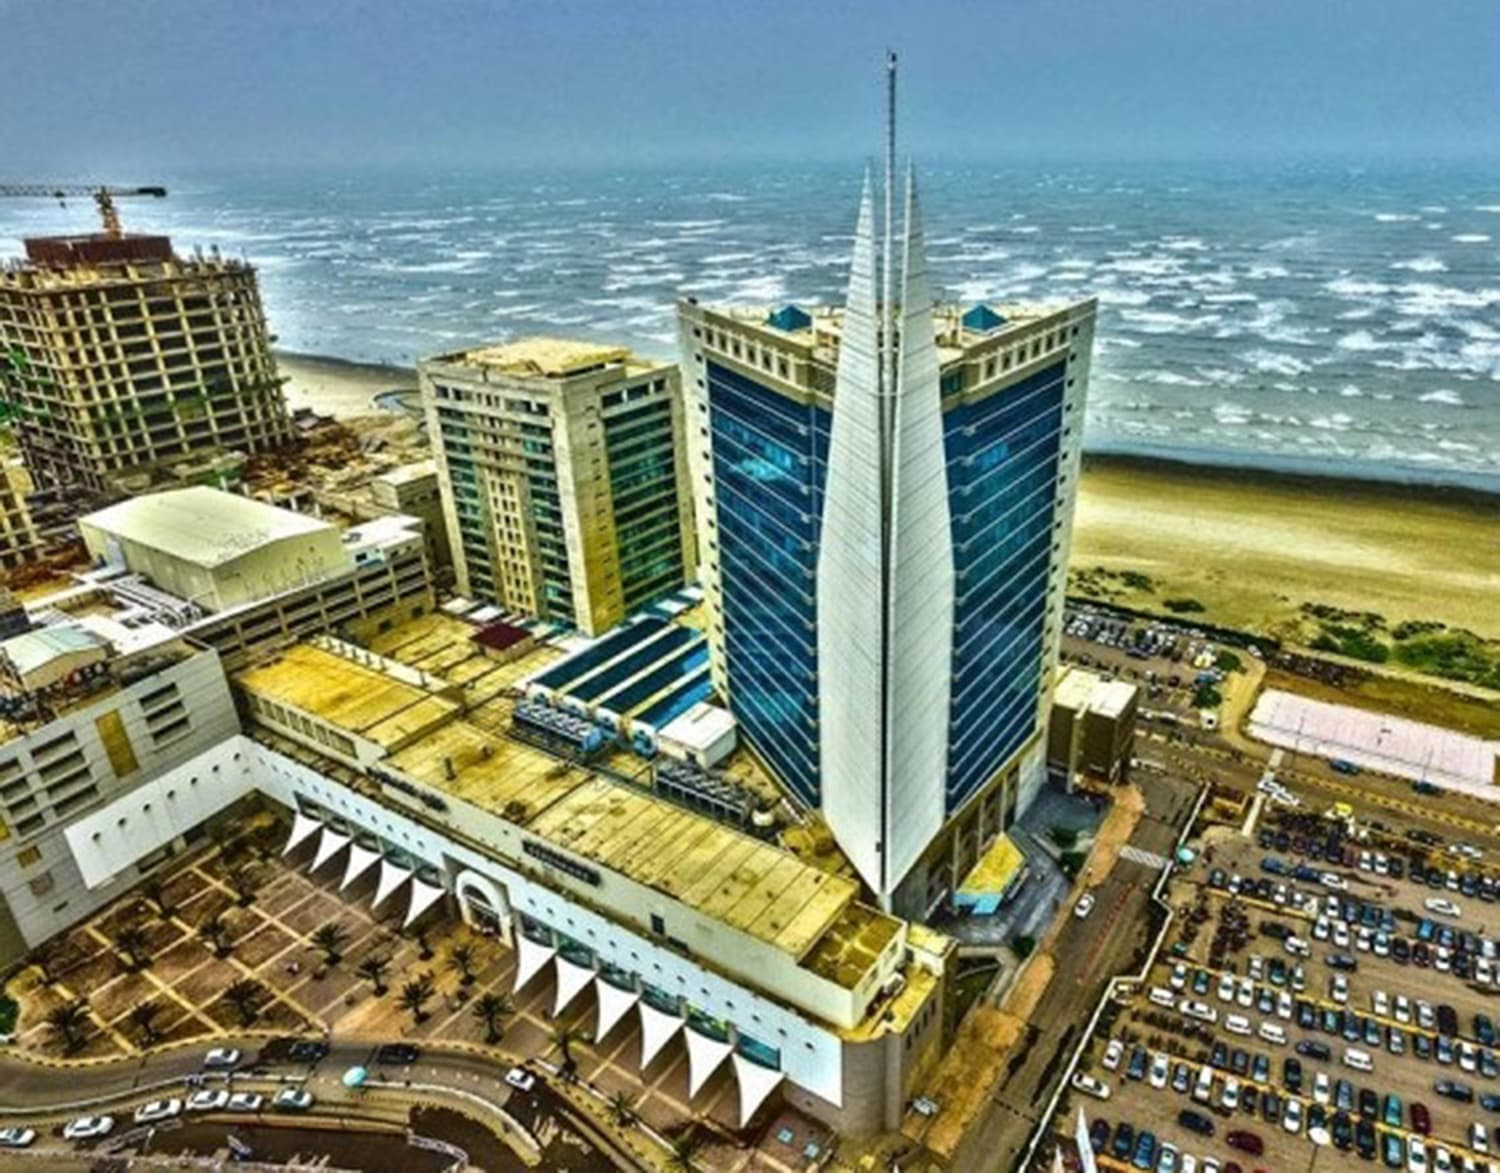 Karachi: Pakistan's economic hub. (Pic: B-Cube)